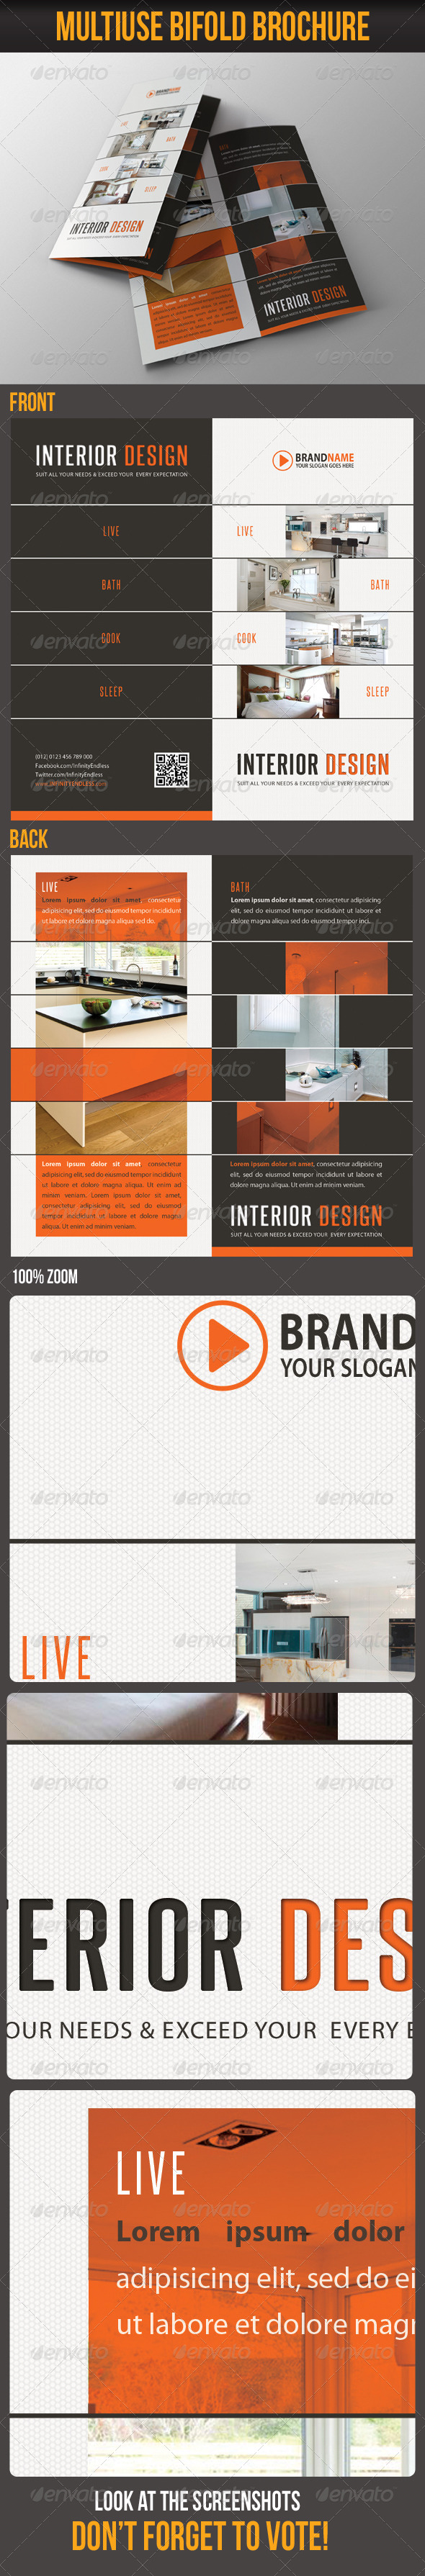 GraphicRiver Multiuse Bifold Brochure 29 6125597